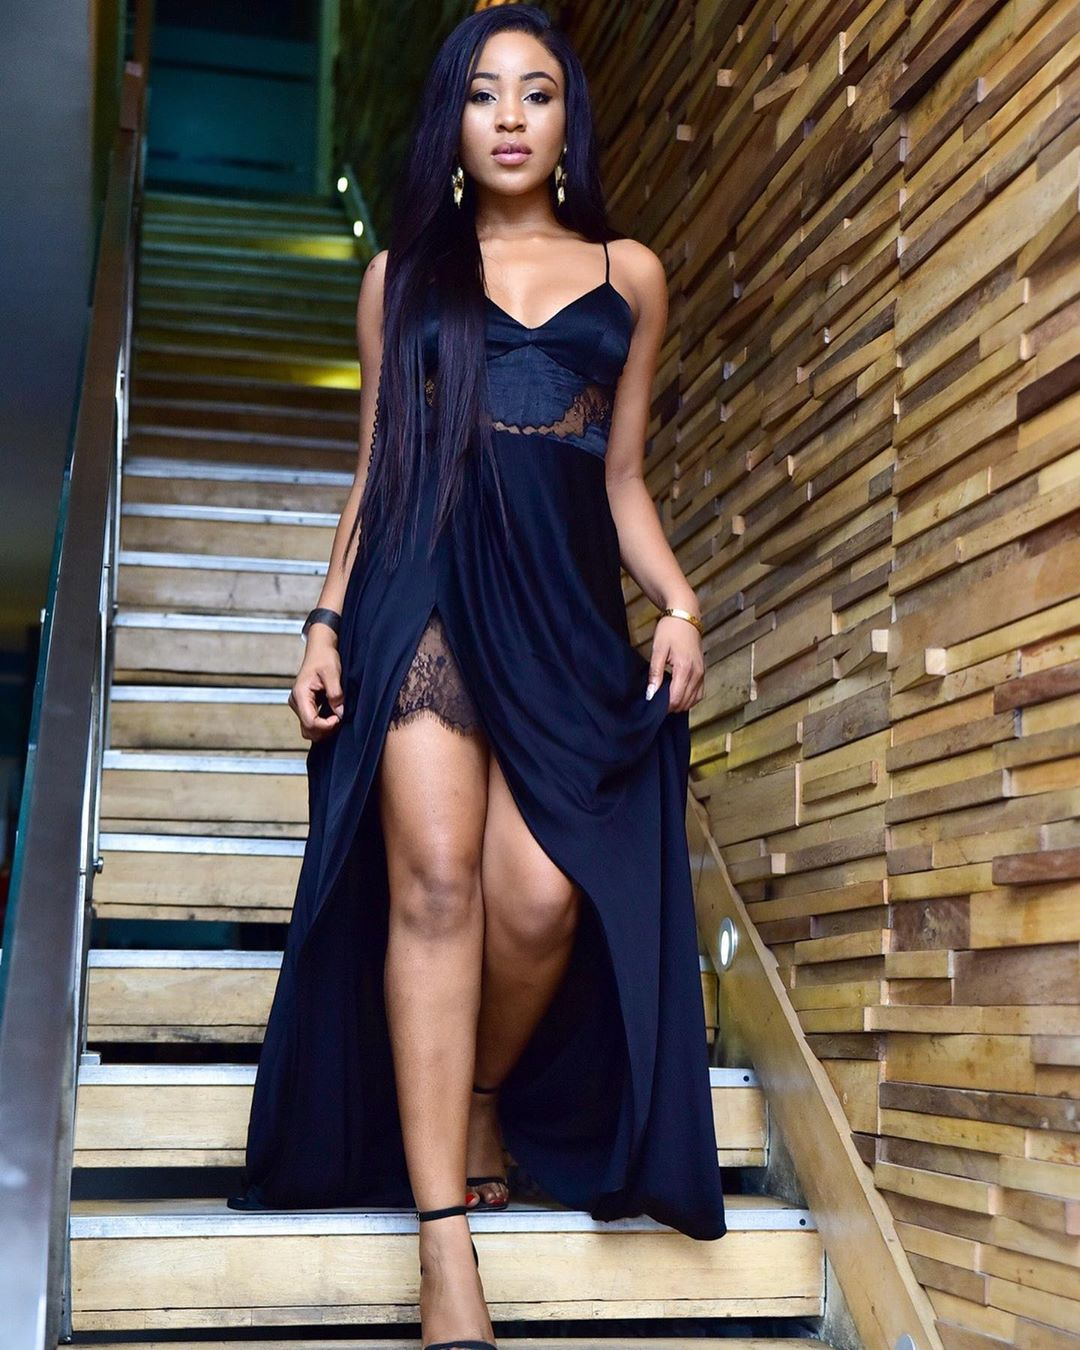 Life Before #BBNaija: Red Carpet and Beauty Looks ERICA Be Giving Us    54History